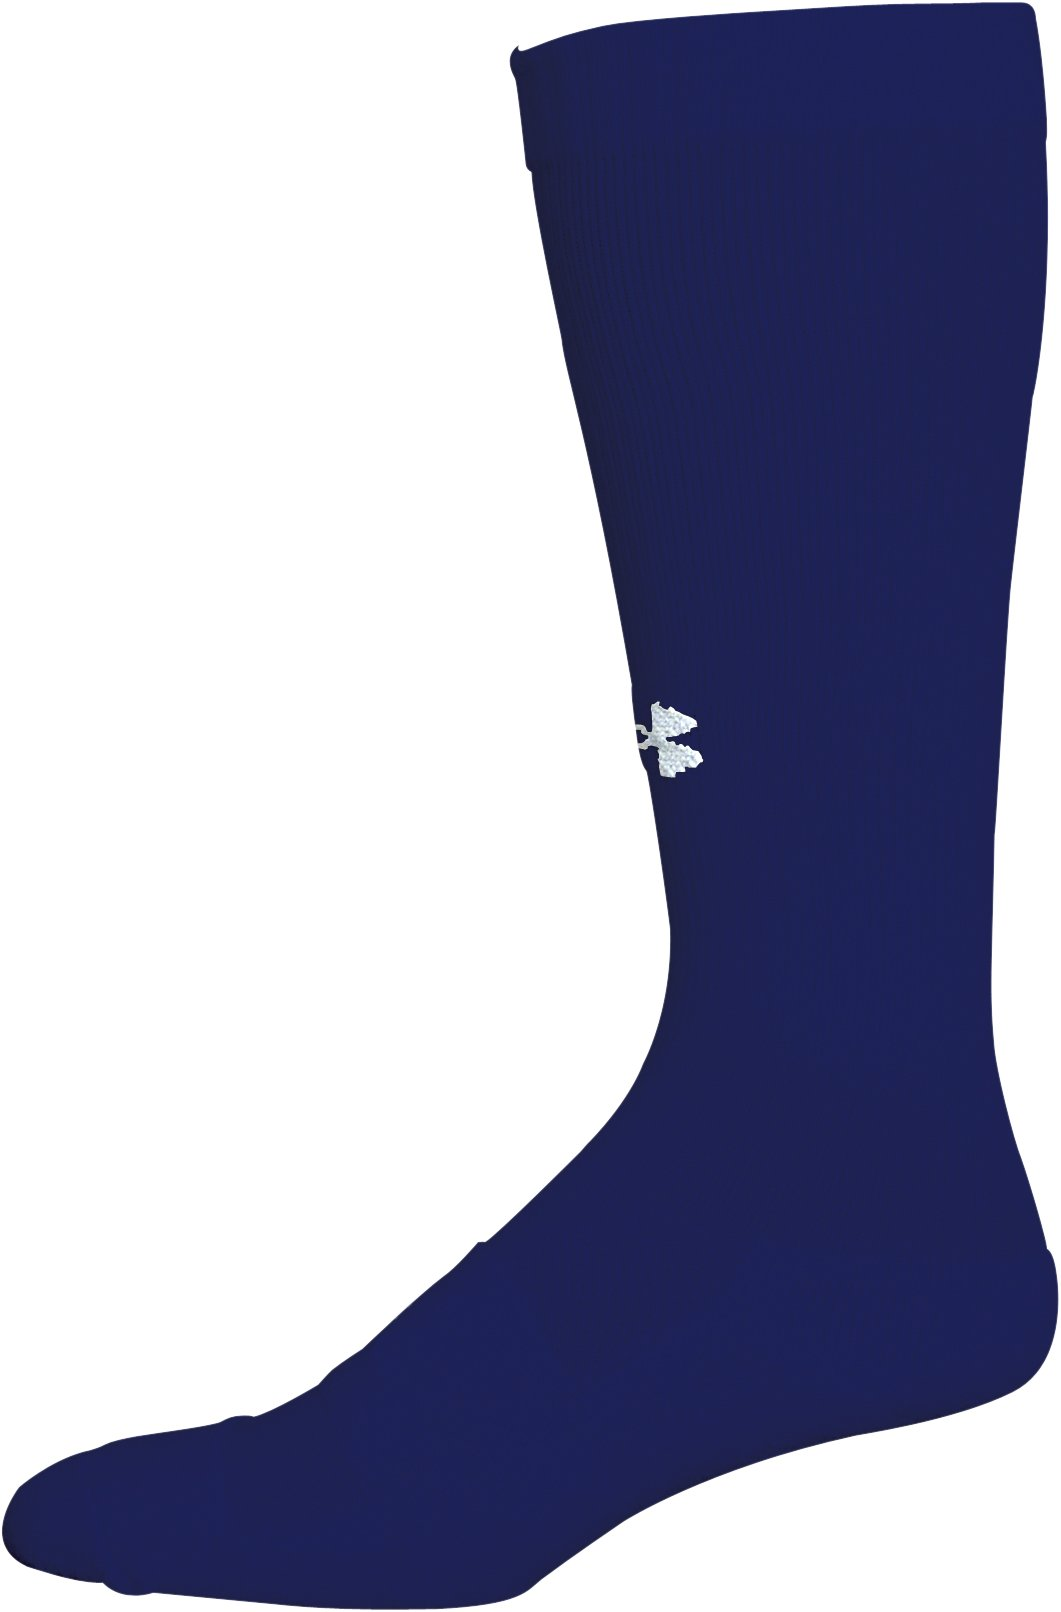 Youth AllSport Socks, Midnight Navy